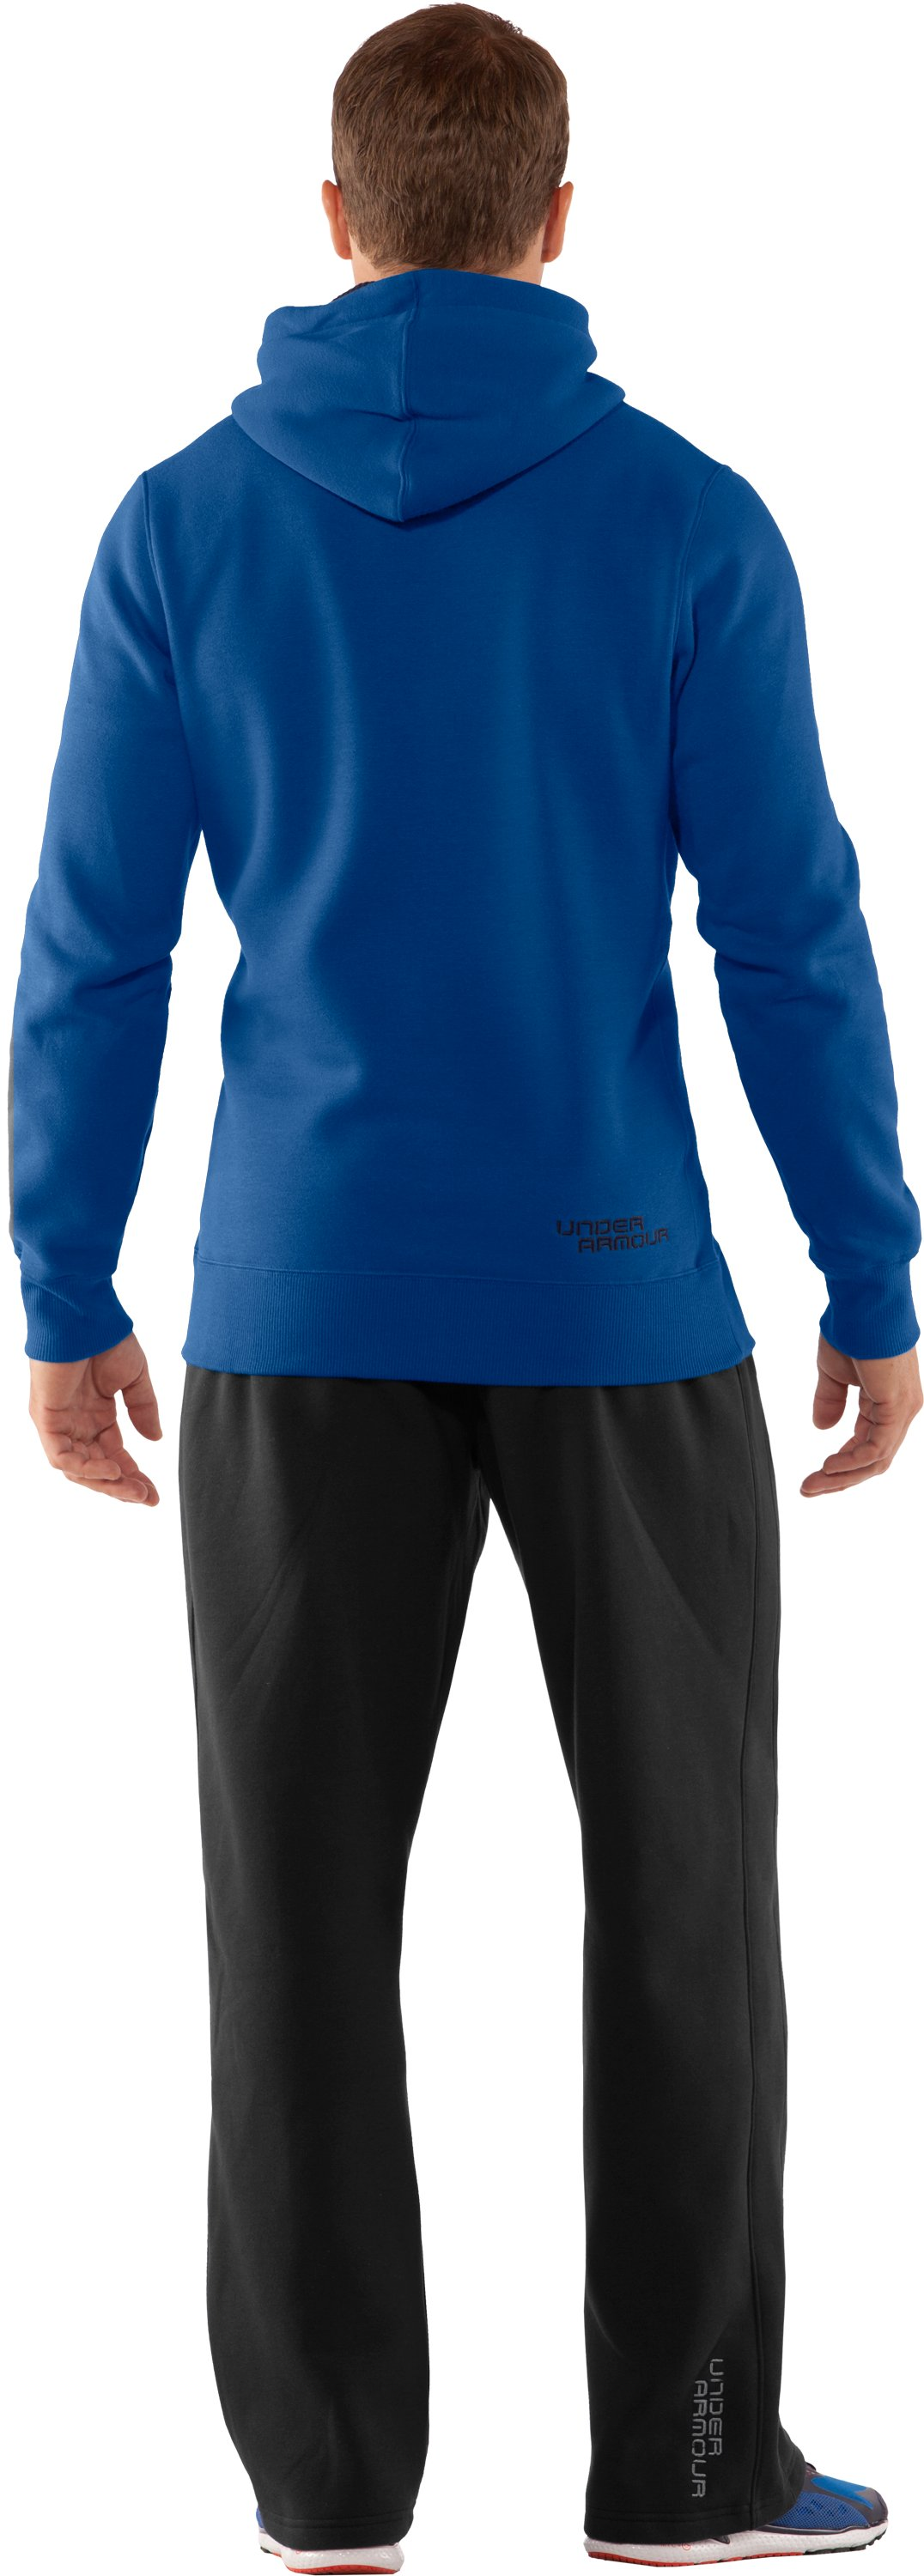 Men's Charged Cotton® Storm Pullover Hoodie, EMPIRE BLUE, Back